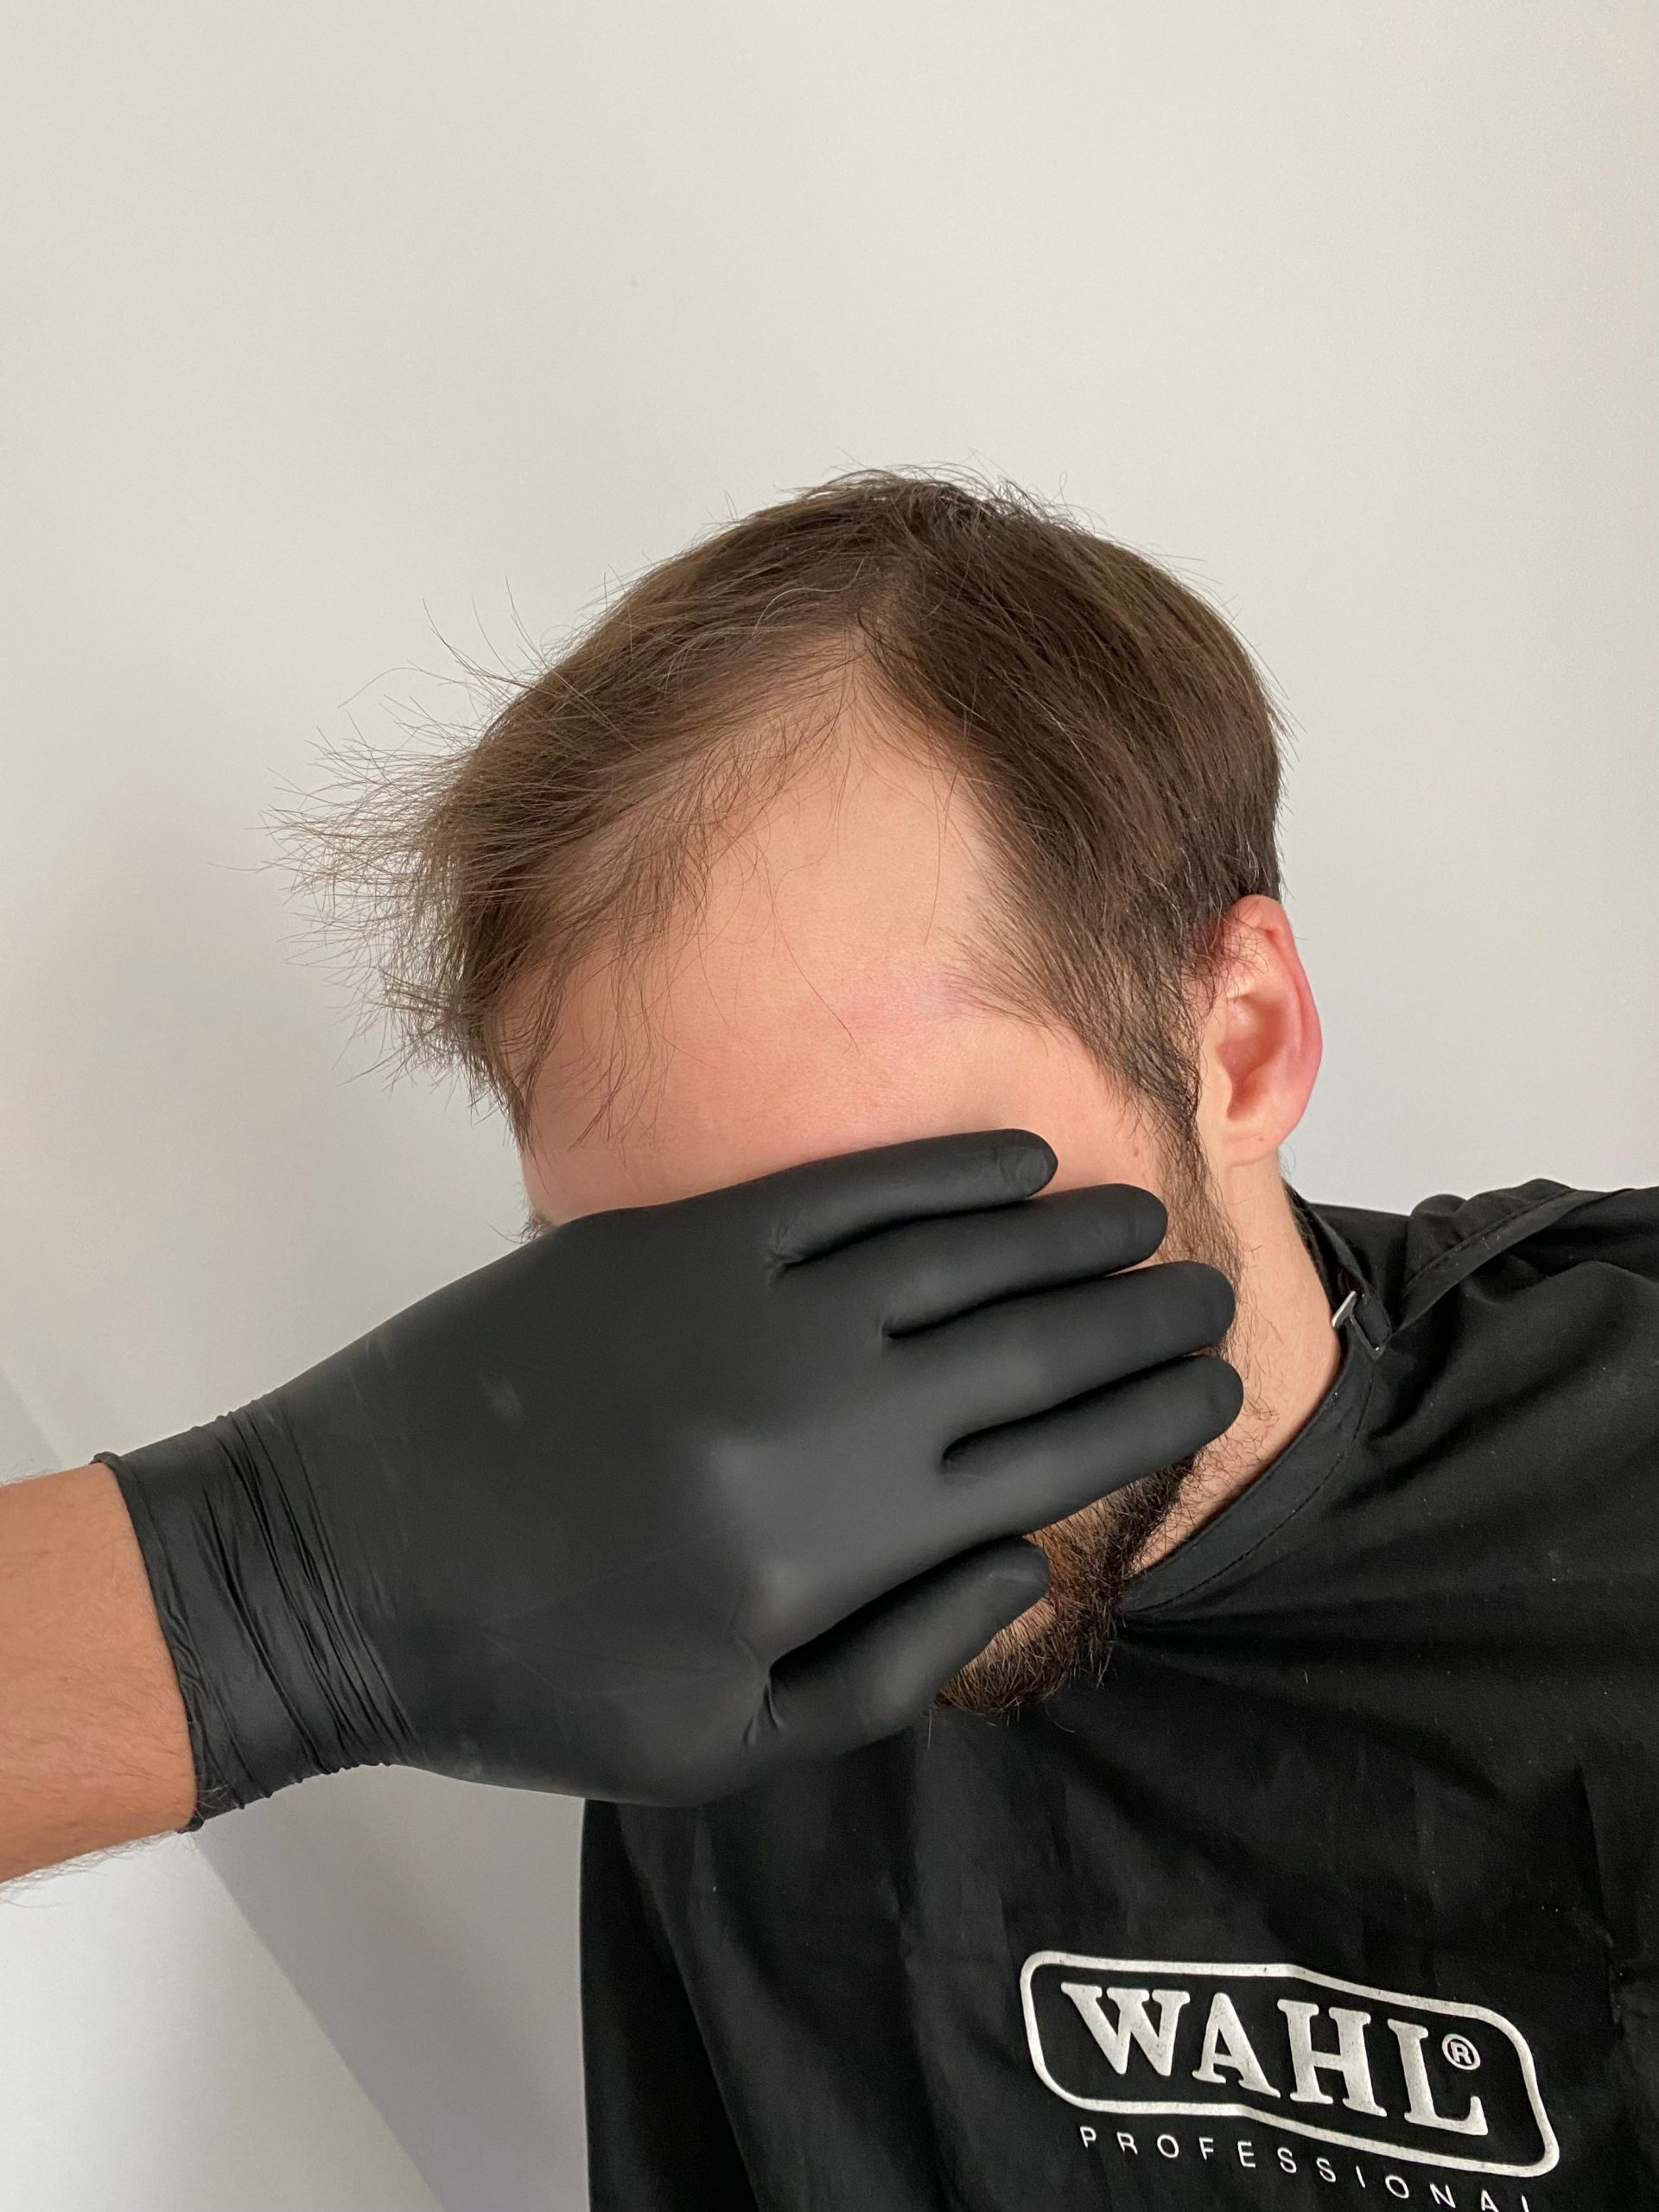 A TikToker inspires bald men to try hairpieces because it 'makes a difference in somebody's self-confidence'